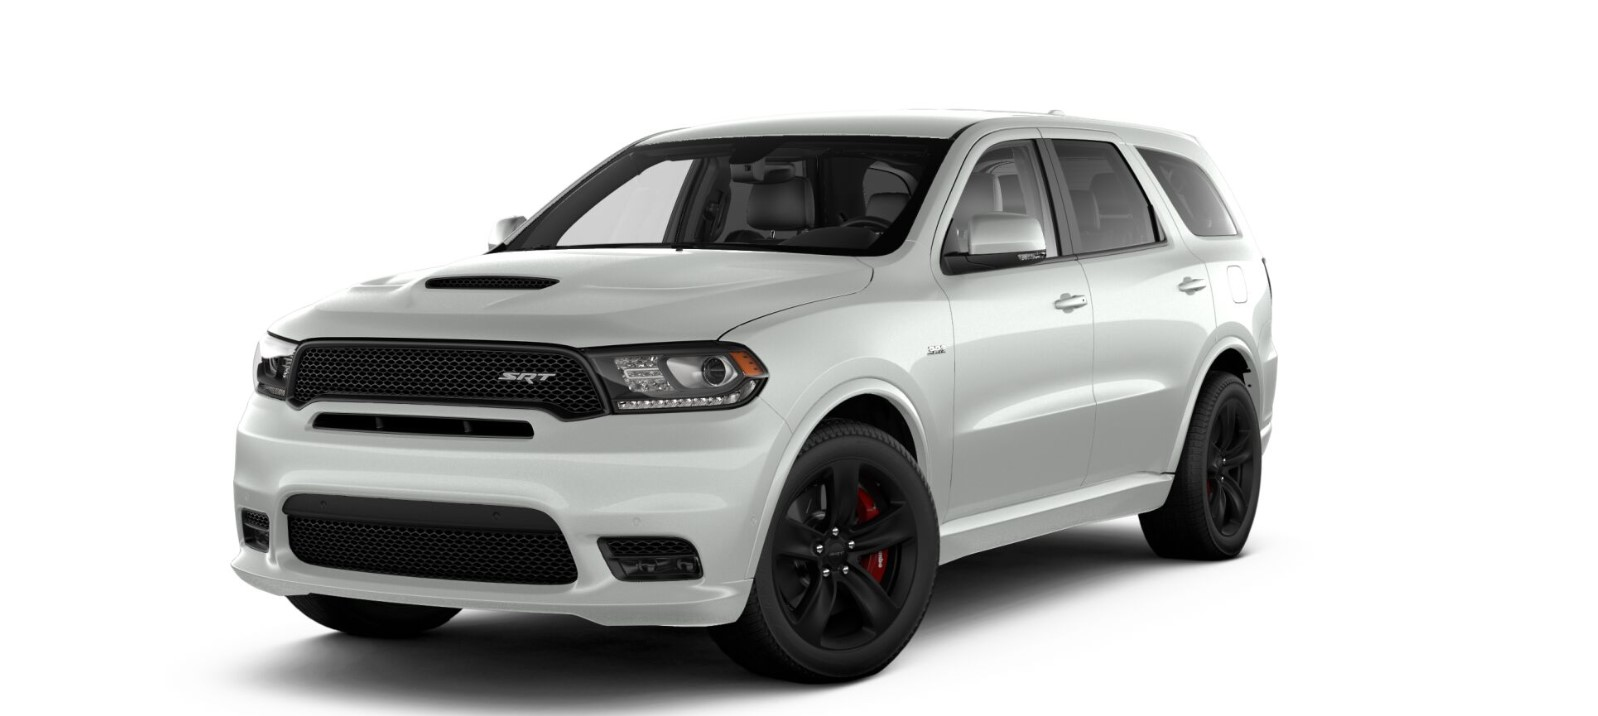 2018 Dodge Durango Srt Jeep Chrysler Dodge Ram Of Ontario